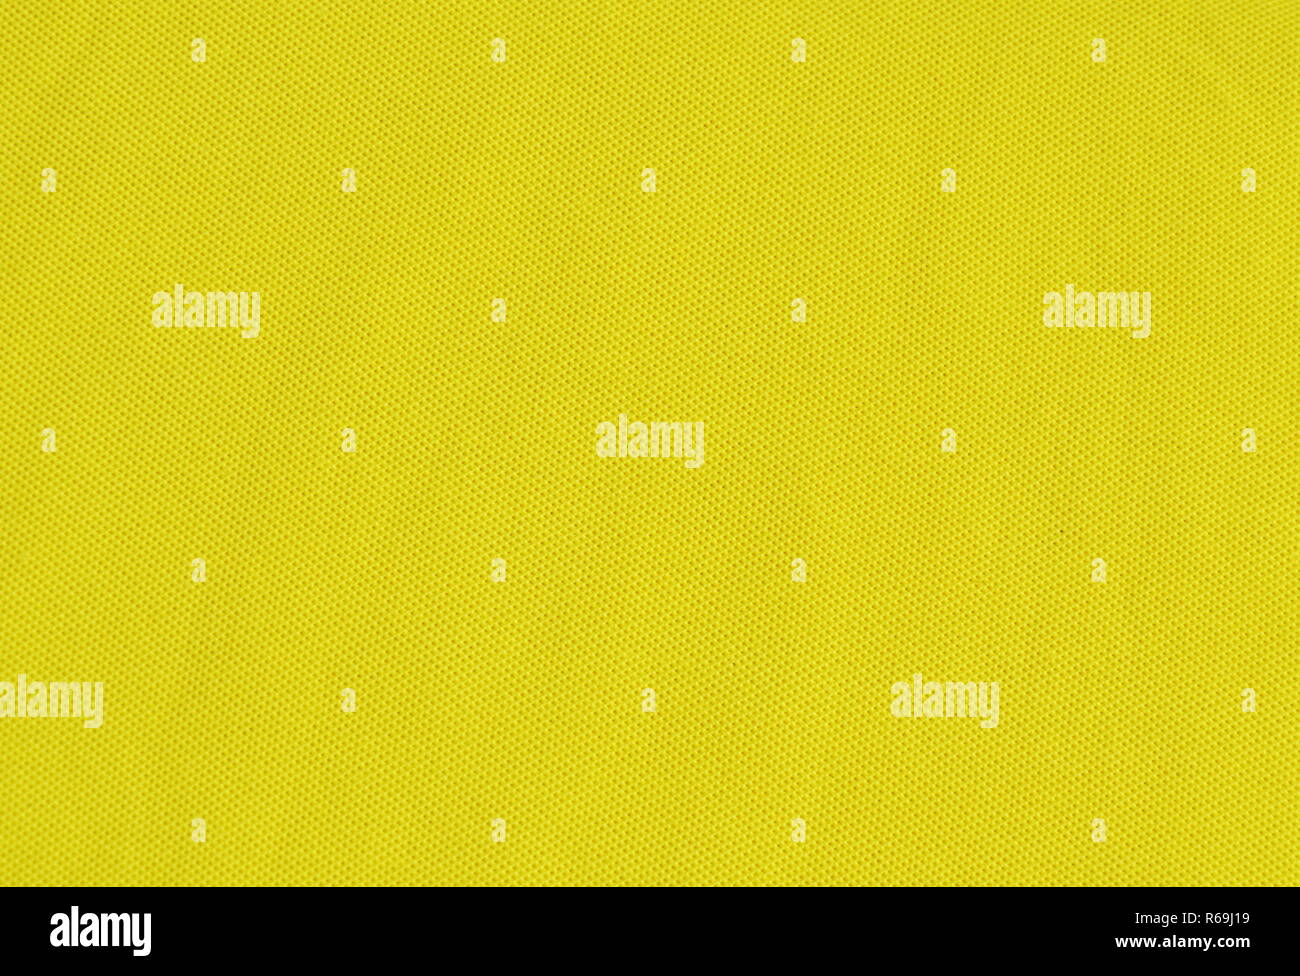 yellow stretch fabric texture and background - Stock Image